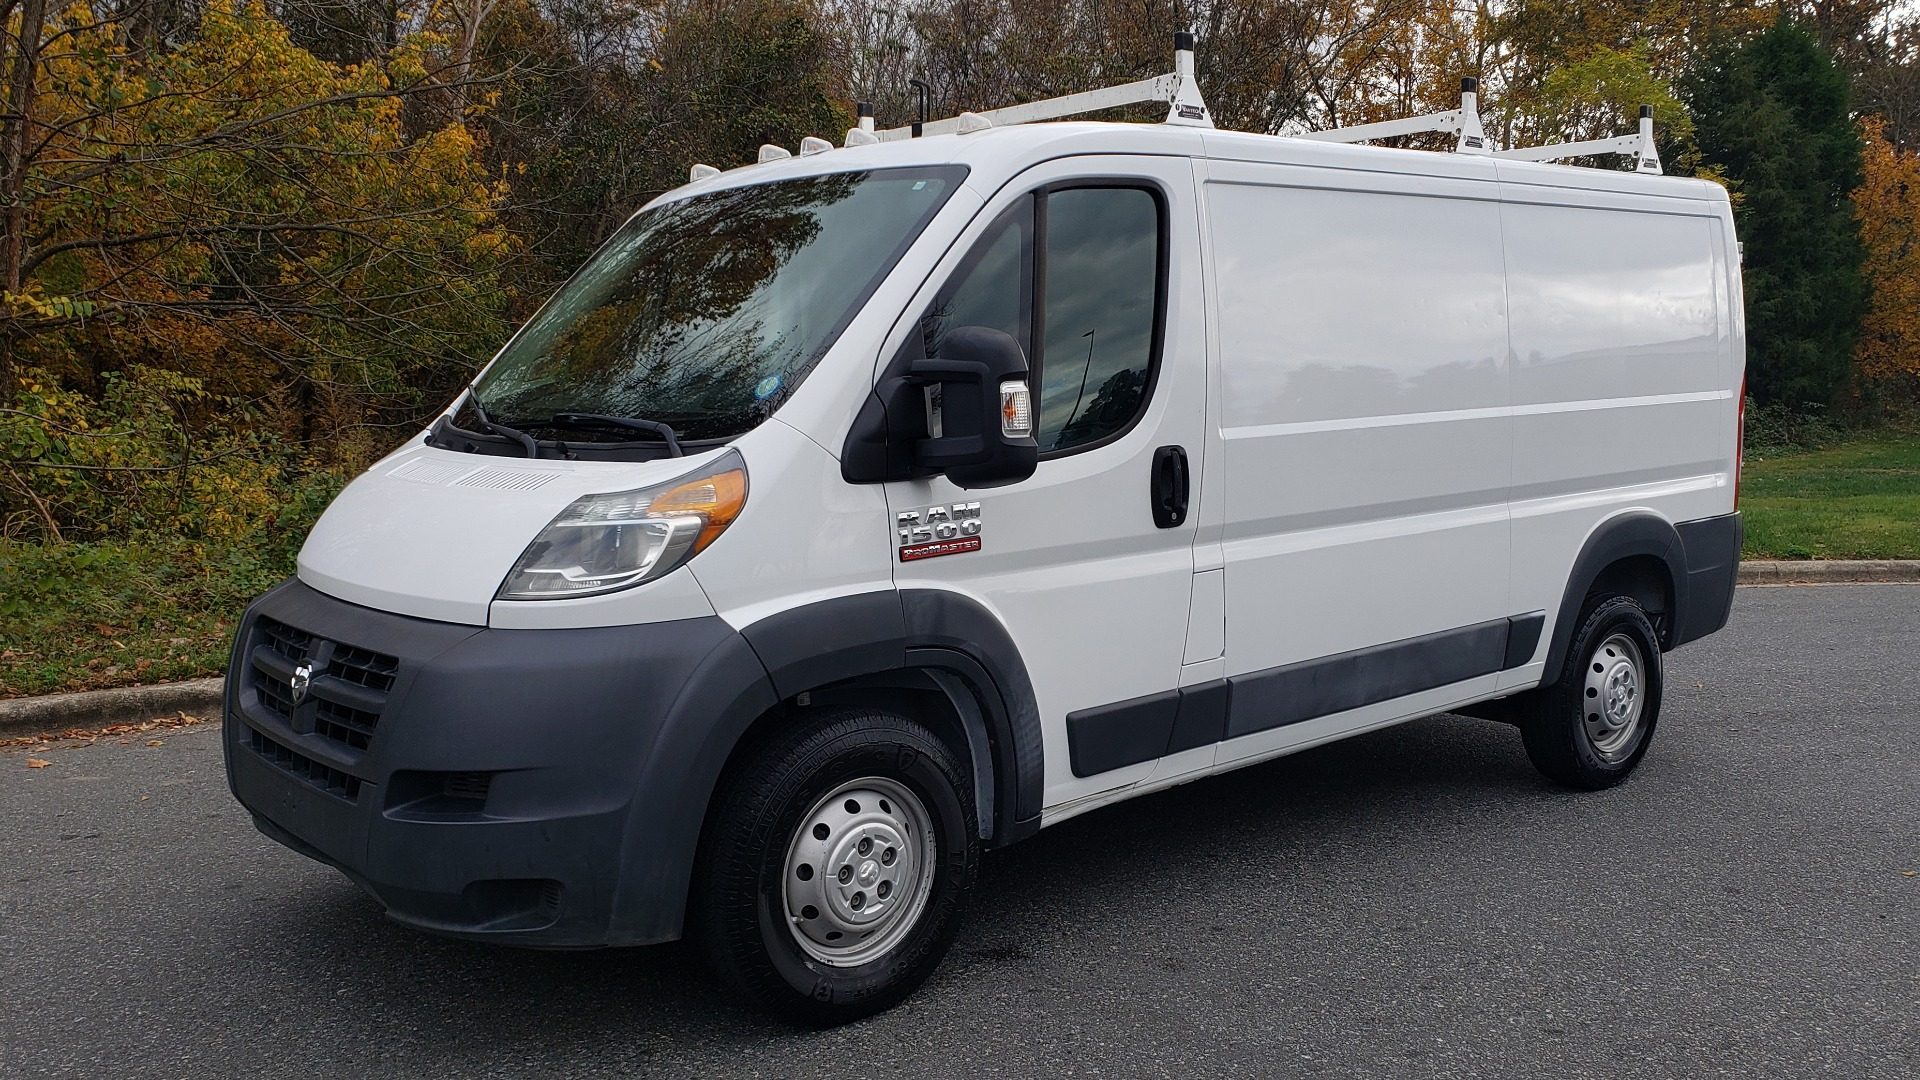 Used 2015 Ram PROMASTER CARGO VAN 136-INCH WB / LOW ROOF / LADDER RACK / INSIDE RACKS for sale $15,995 at Formula Imports in Charlotte NC 28227 1